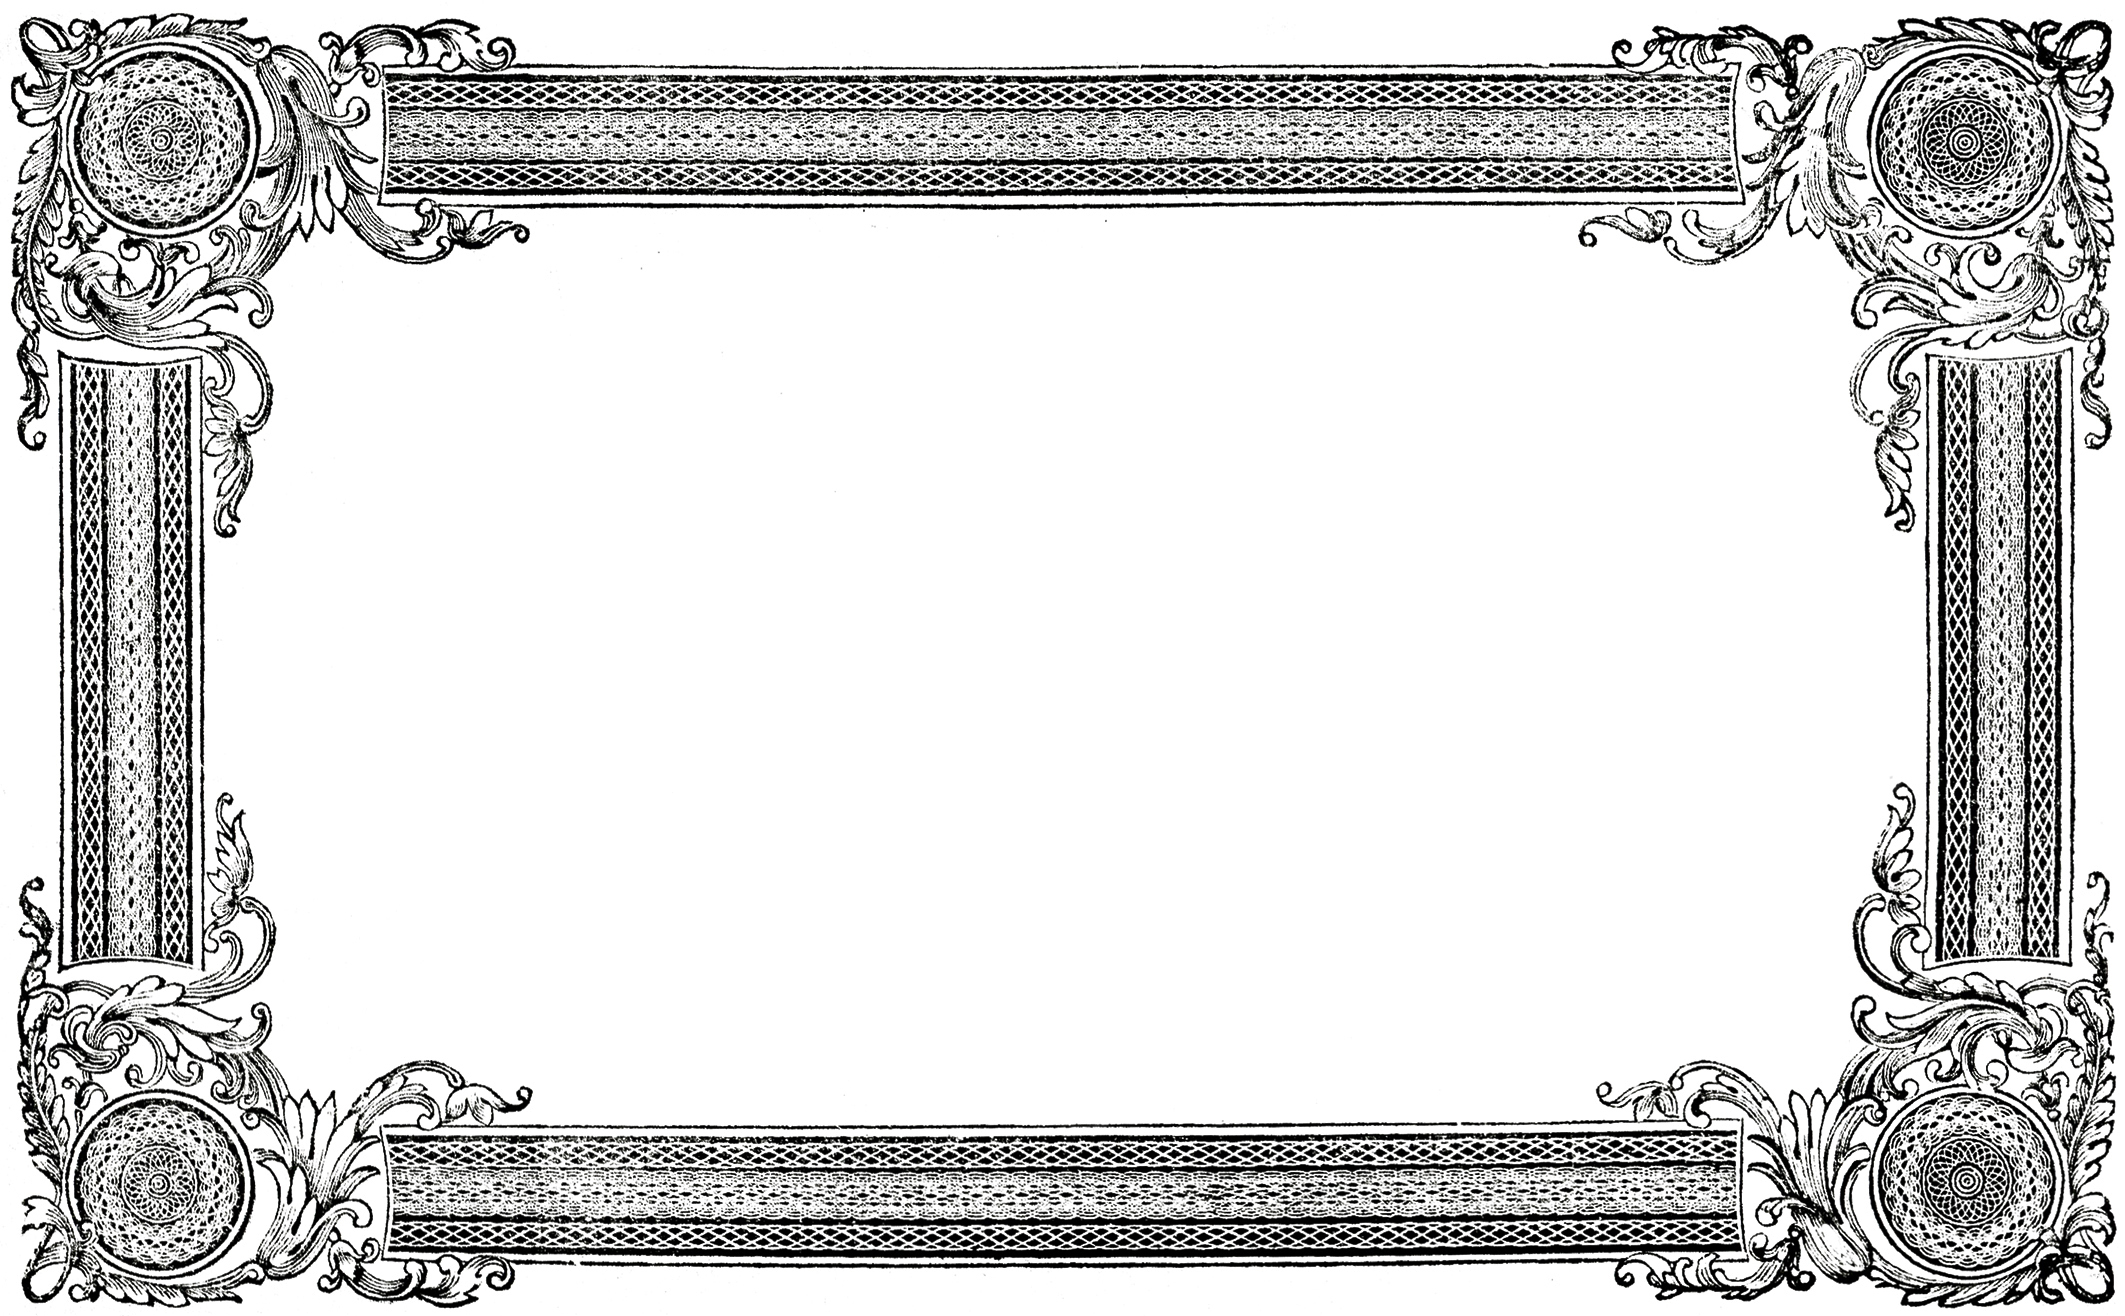 Clip art images the. Free picture frame clipart